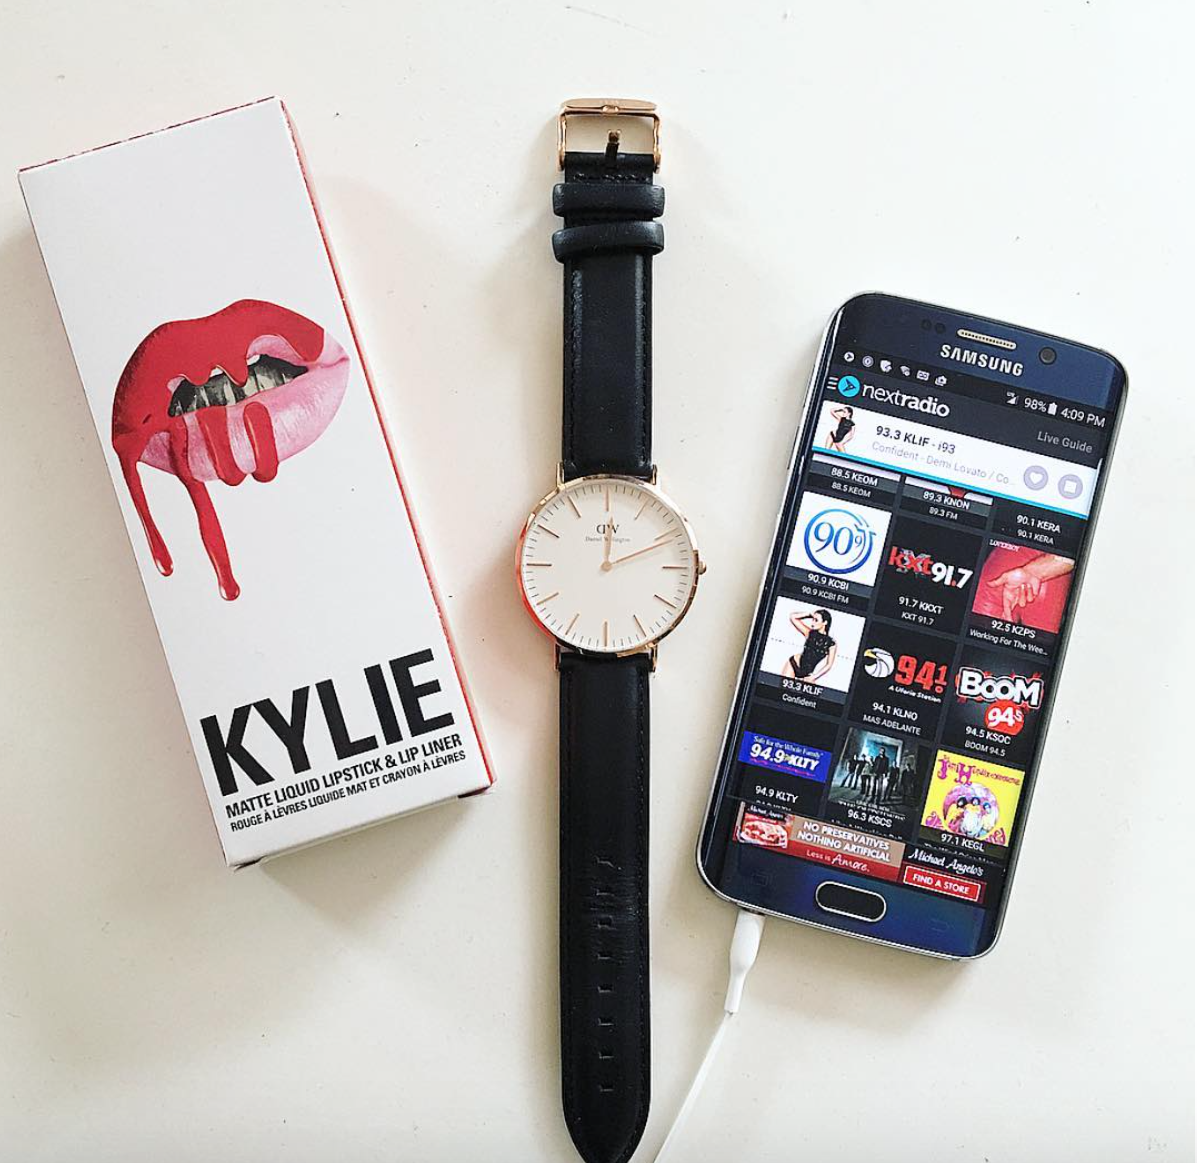 New Obsessions Ever Since I Got All The Kylie Lip Kits They Are Wear My Watch Such A Classic NEXT Radio App Music Is Very Central